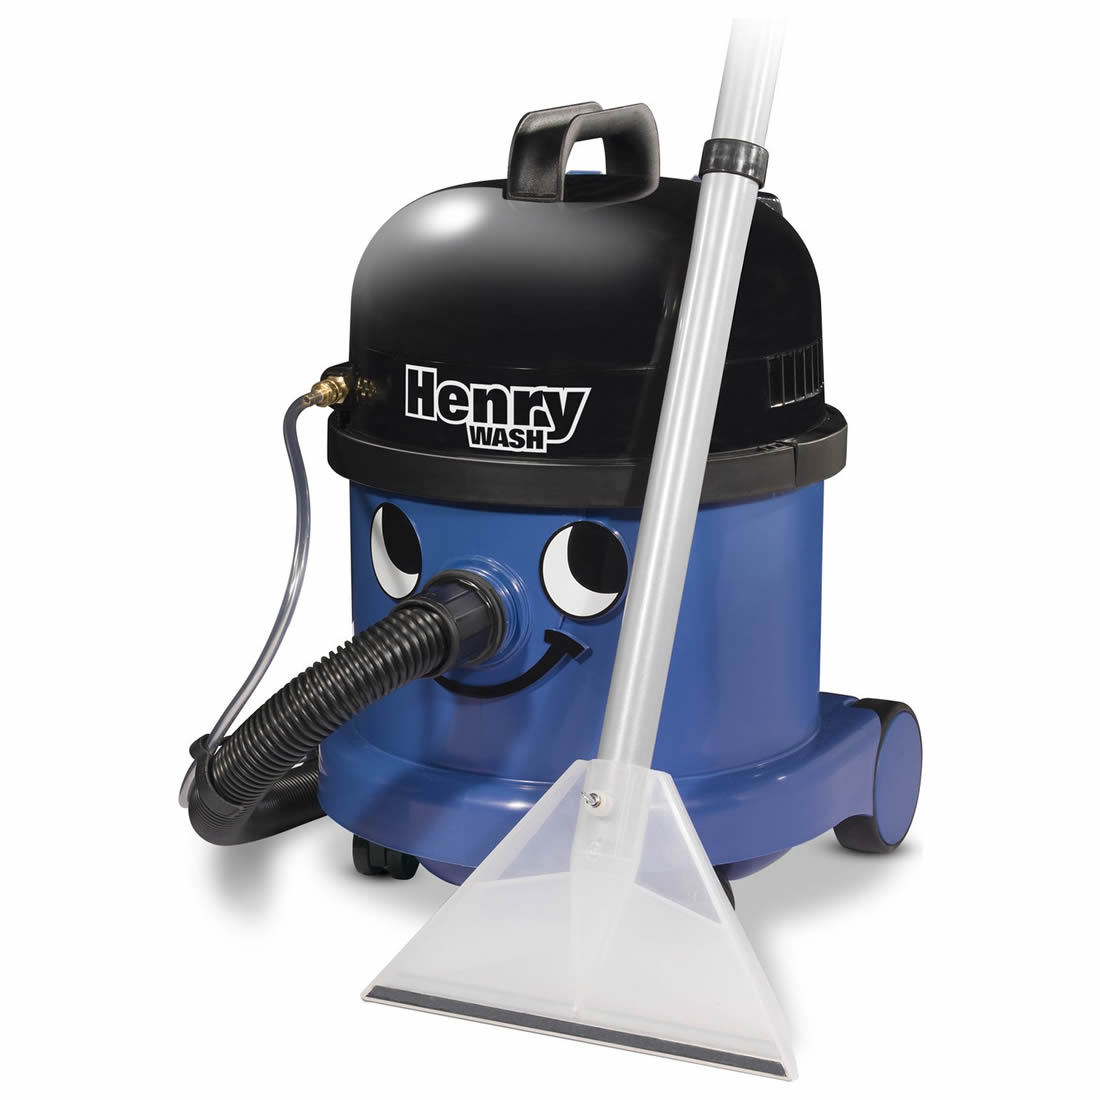 Image of 1060Watts Carpet Cleaner 9litre Capacity